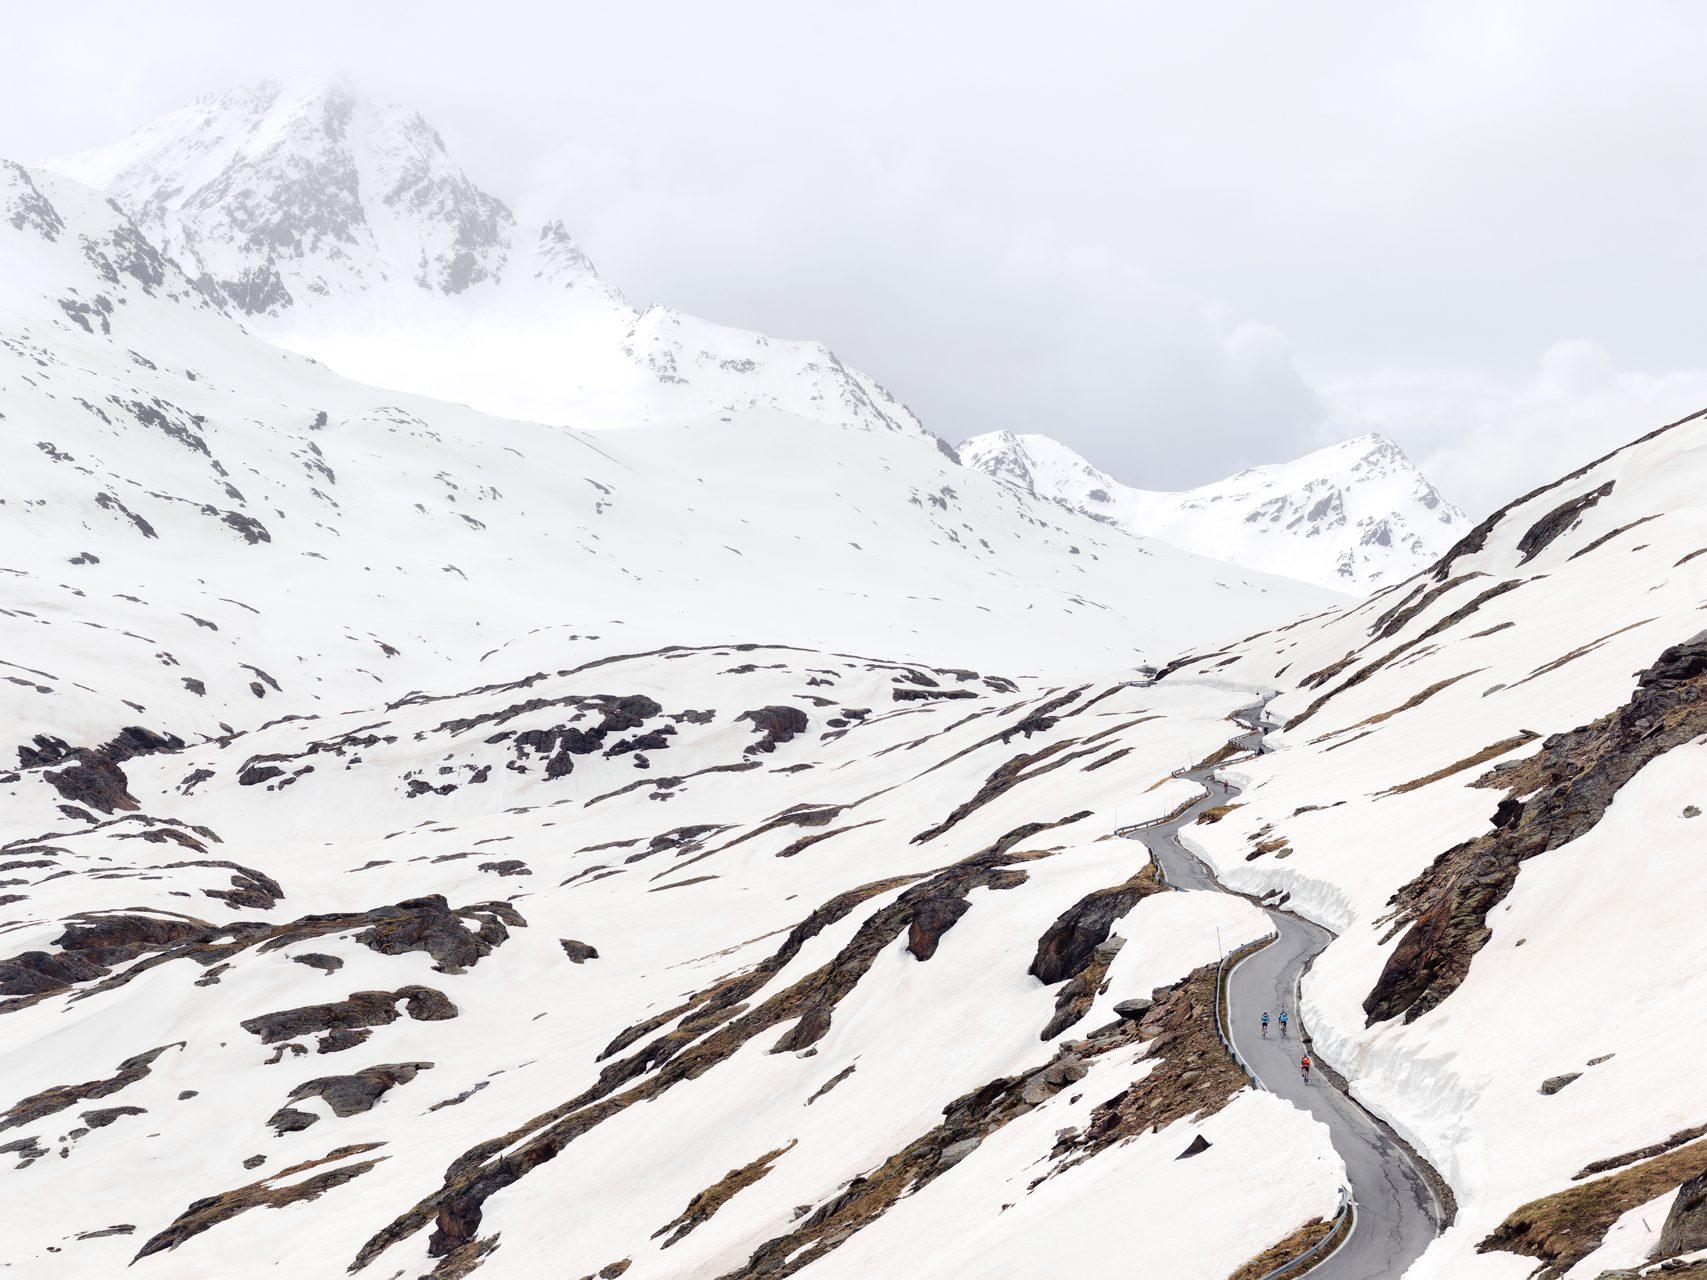 NEXT:EPIC CYCLING CLIMBS - We talked with the photographer Michael Blann about his book